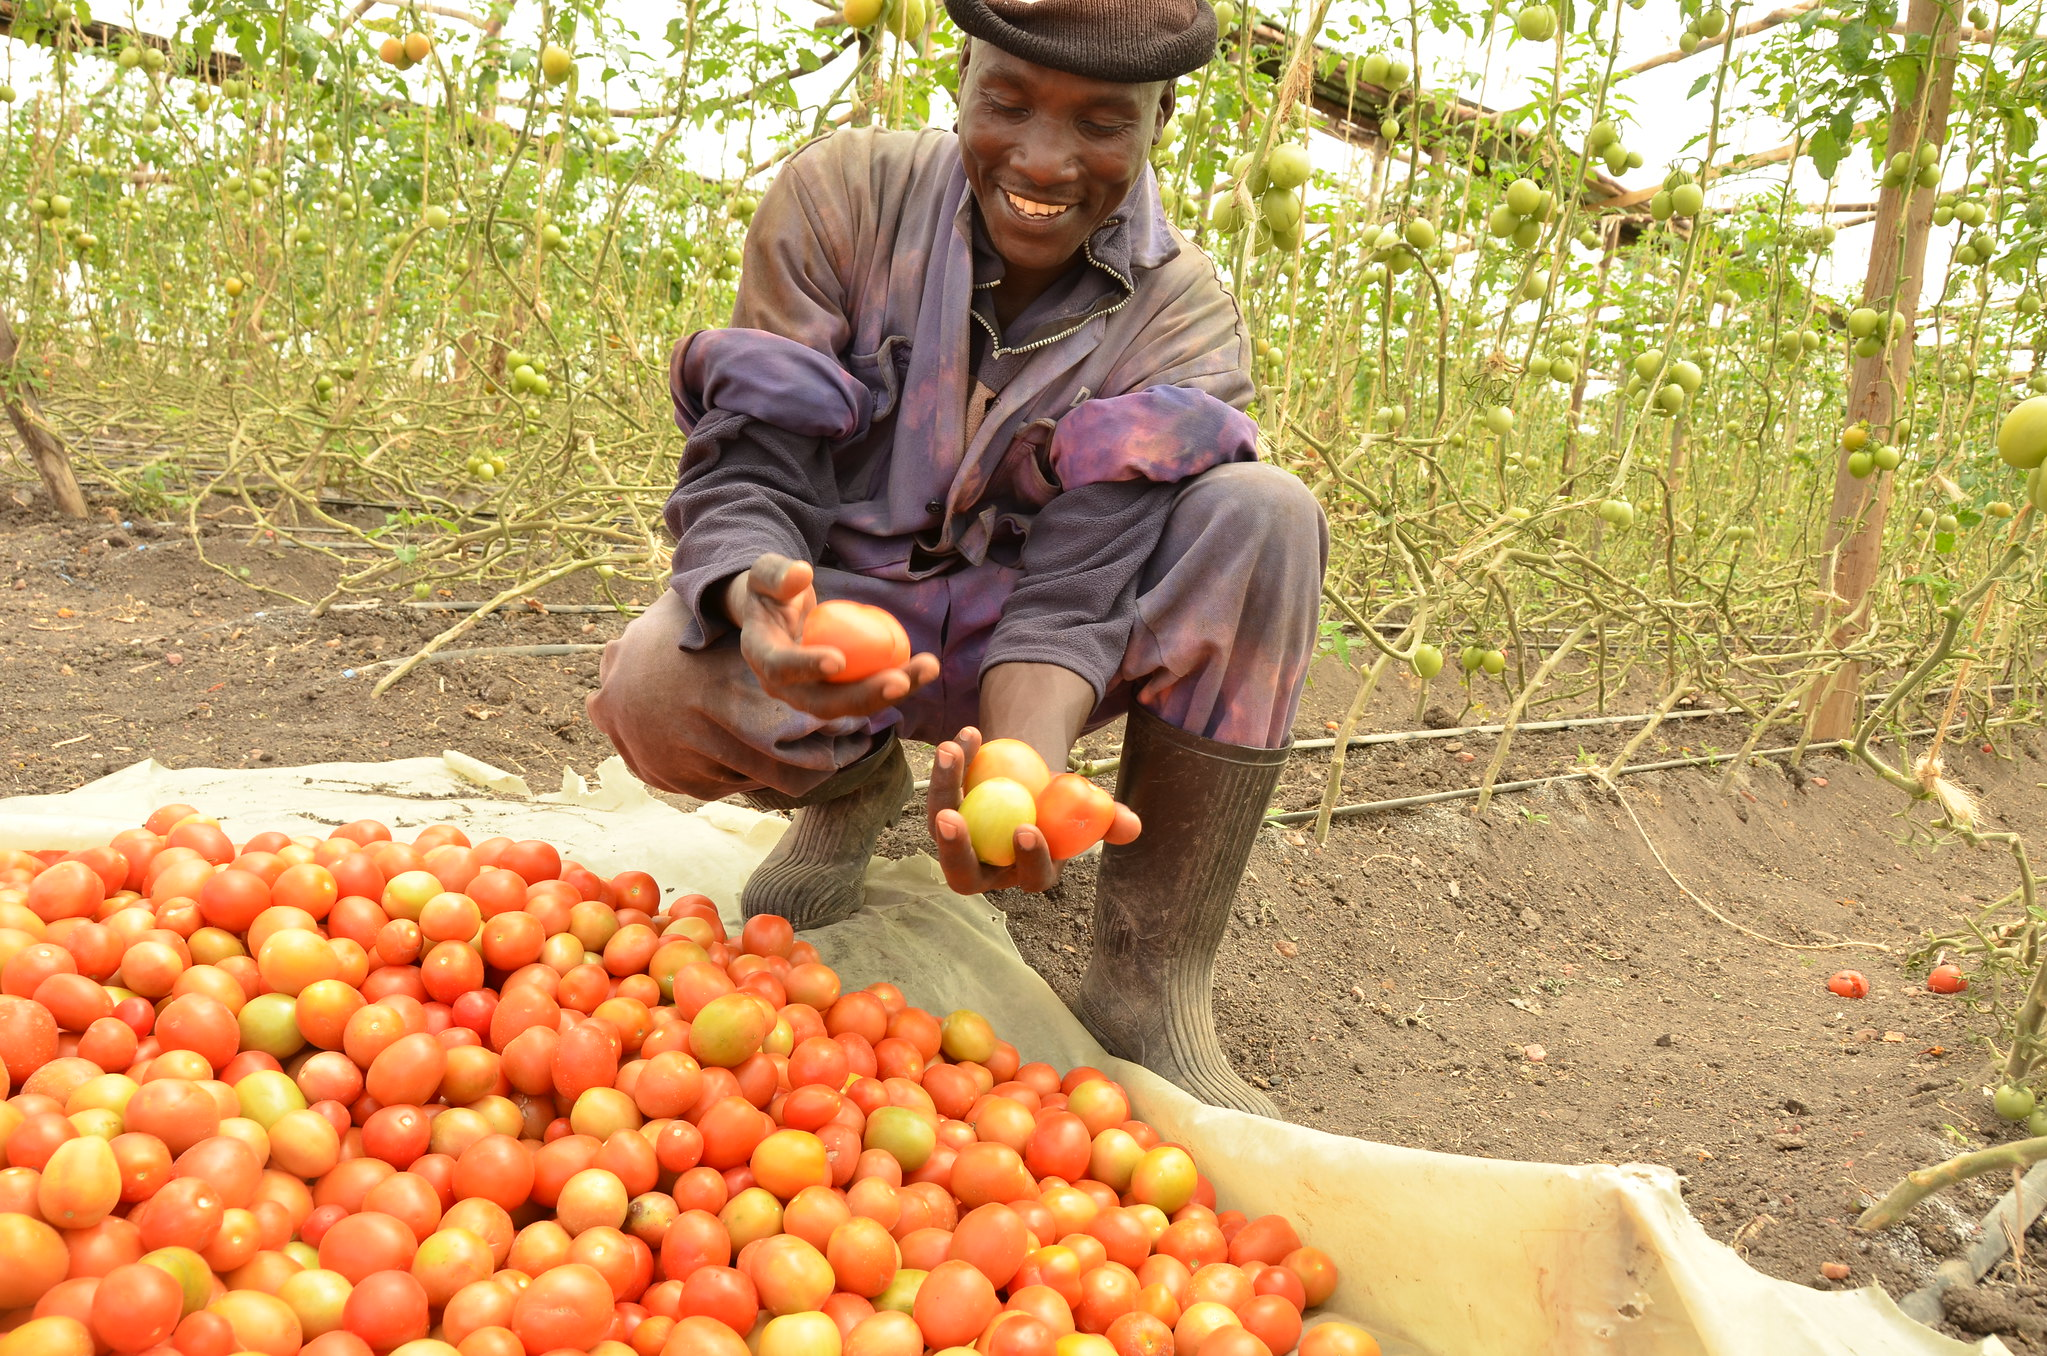 African farmer holding tomatoes